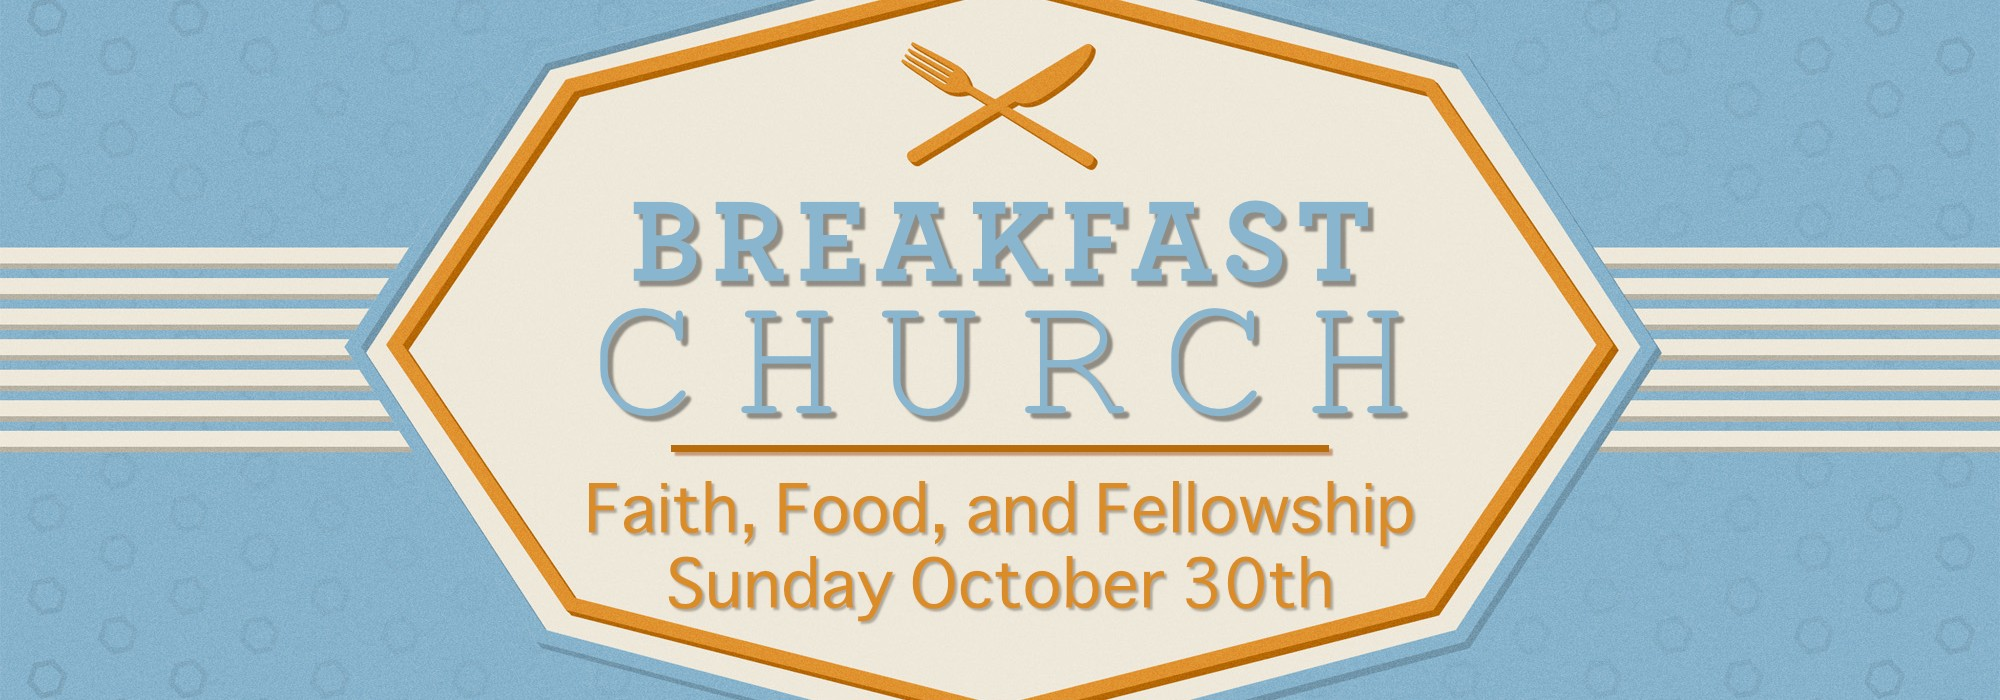 breakfast-church-2-e1476227624136